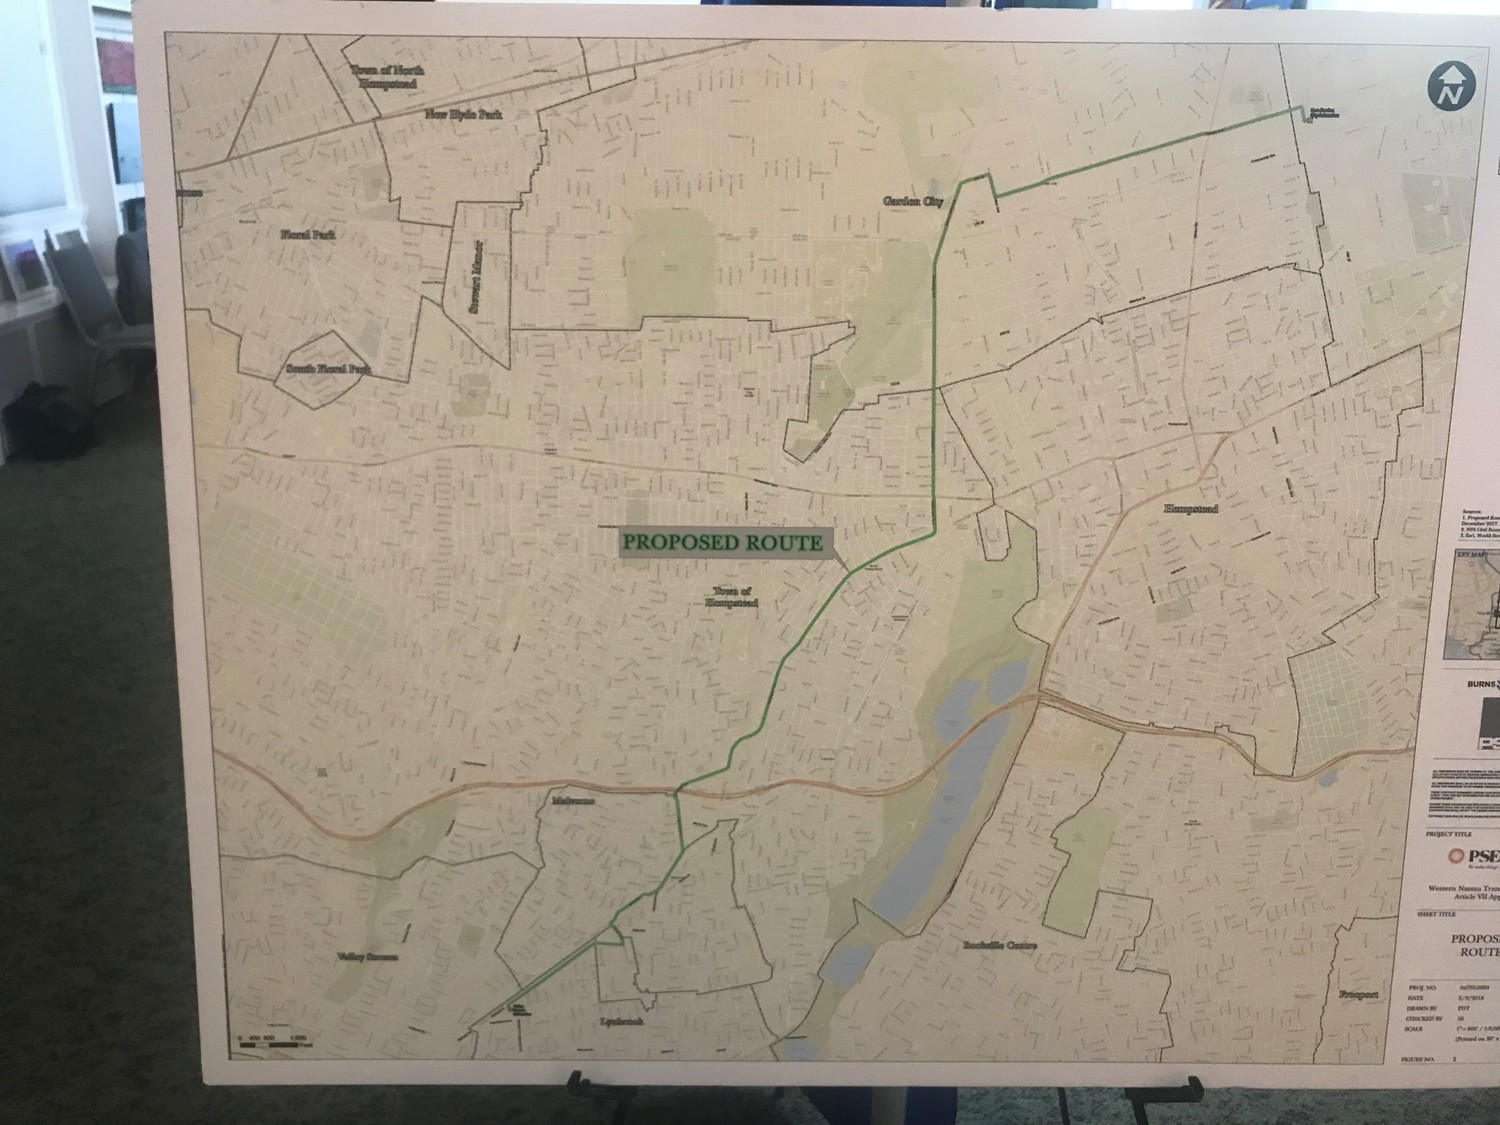 A map of PSEG's preferred route for the $176 million project, a 7.3-mile, 138-kilovolt underground power line from Uniondale to Lynbrook.